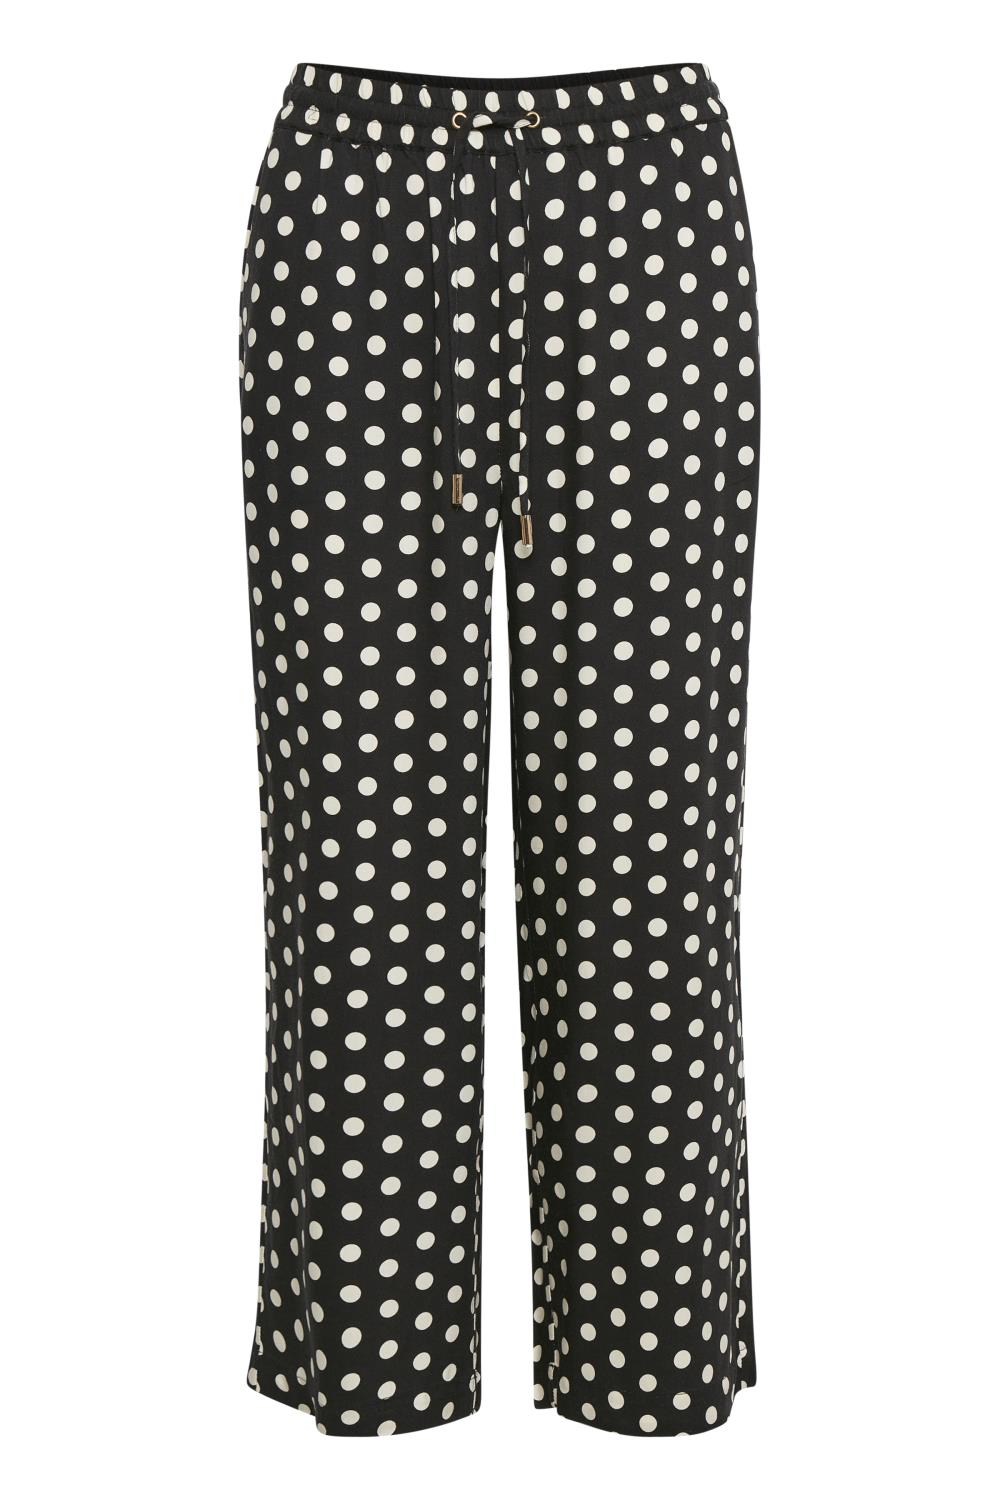 Kaffe Barbara culotte pants, black/broken white dot